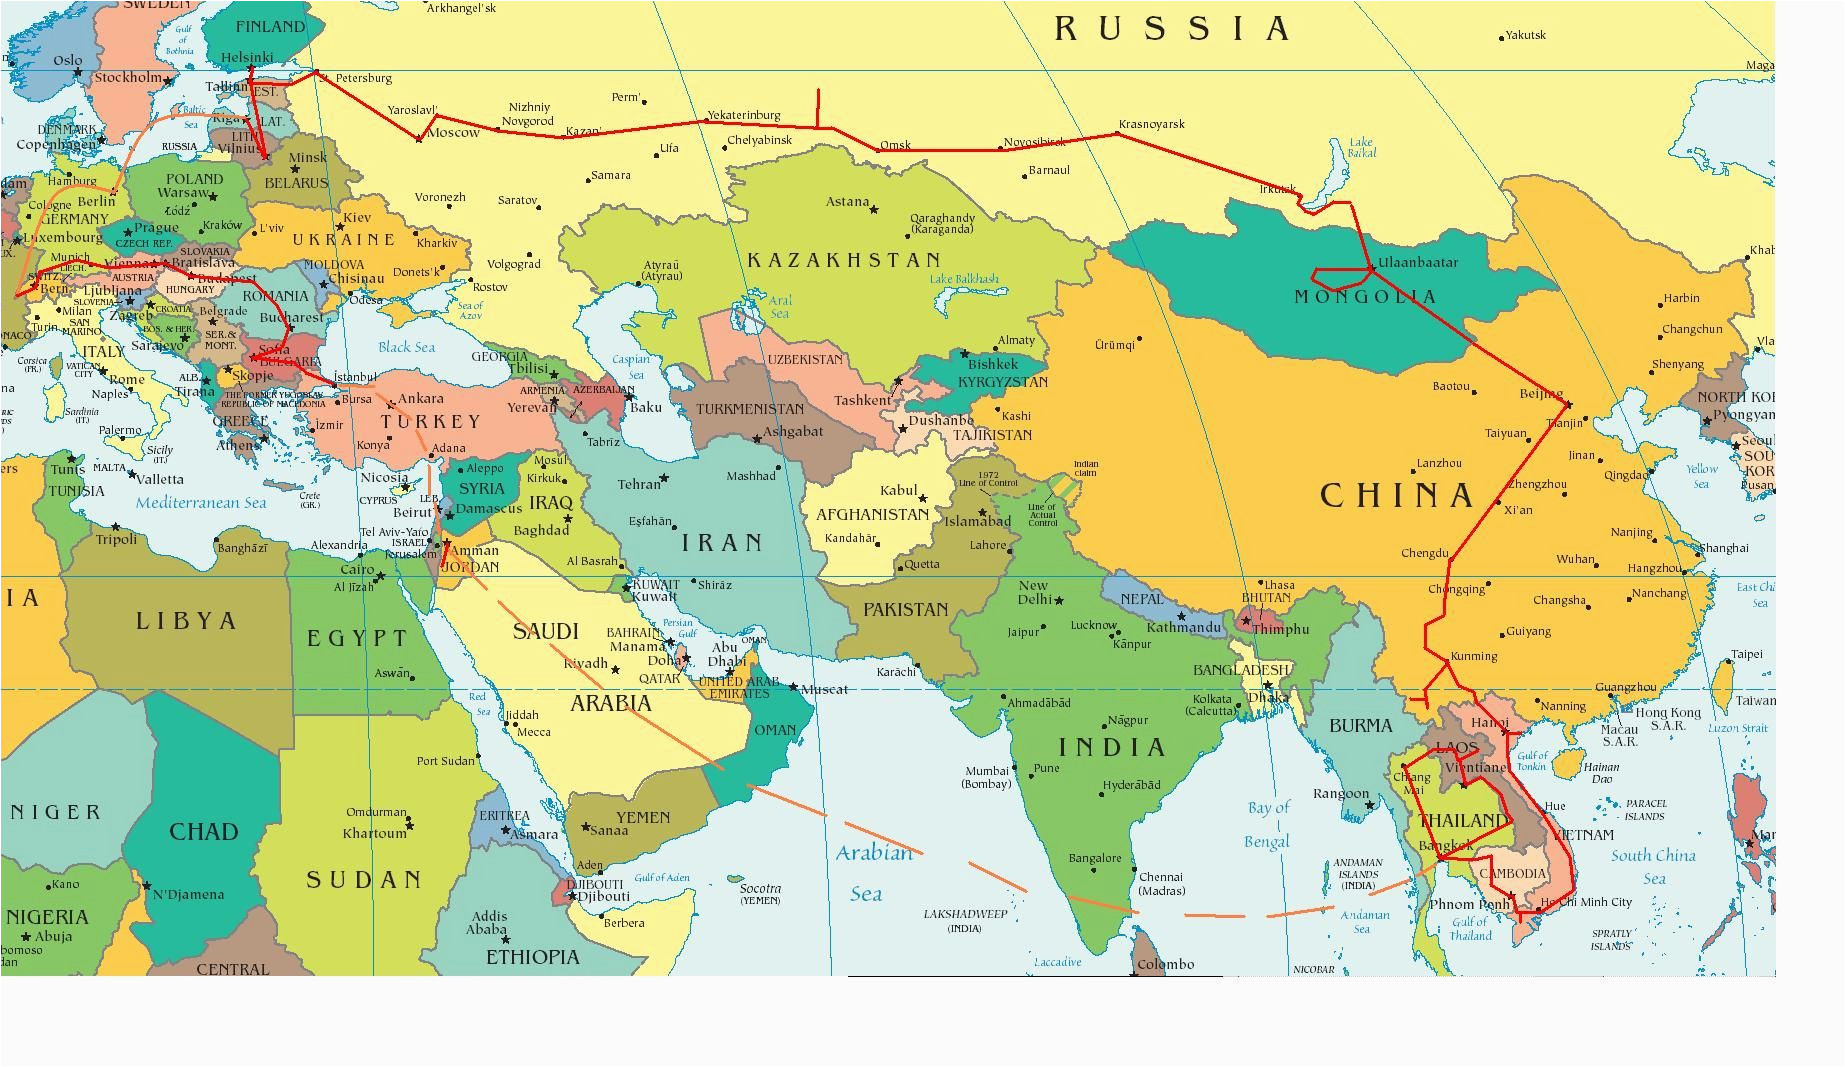 Map Of Europe asia and northern Africa Eastern Europe and Middle East Partial Europe Middle East